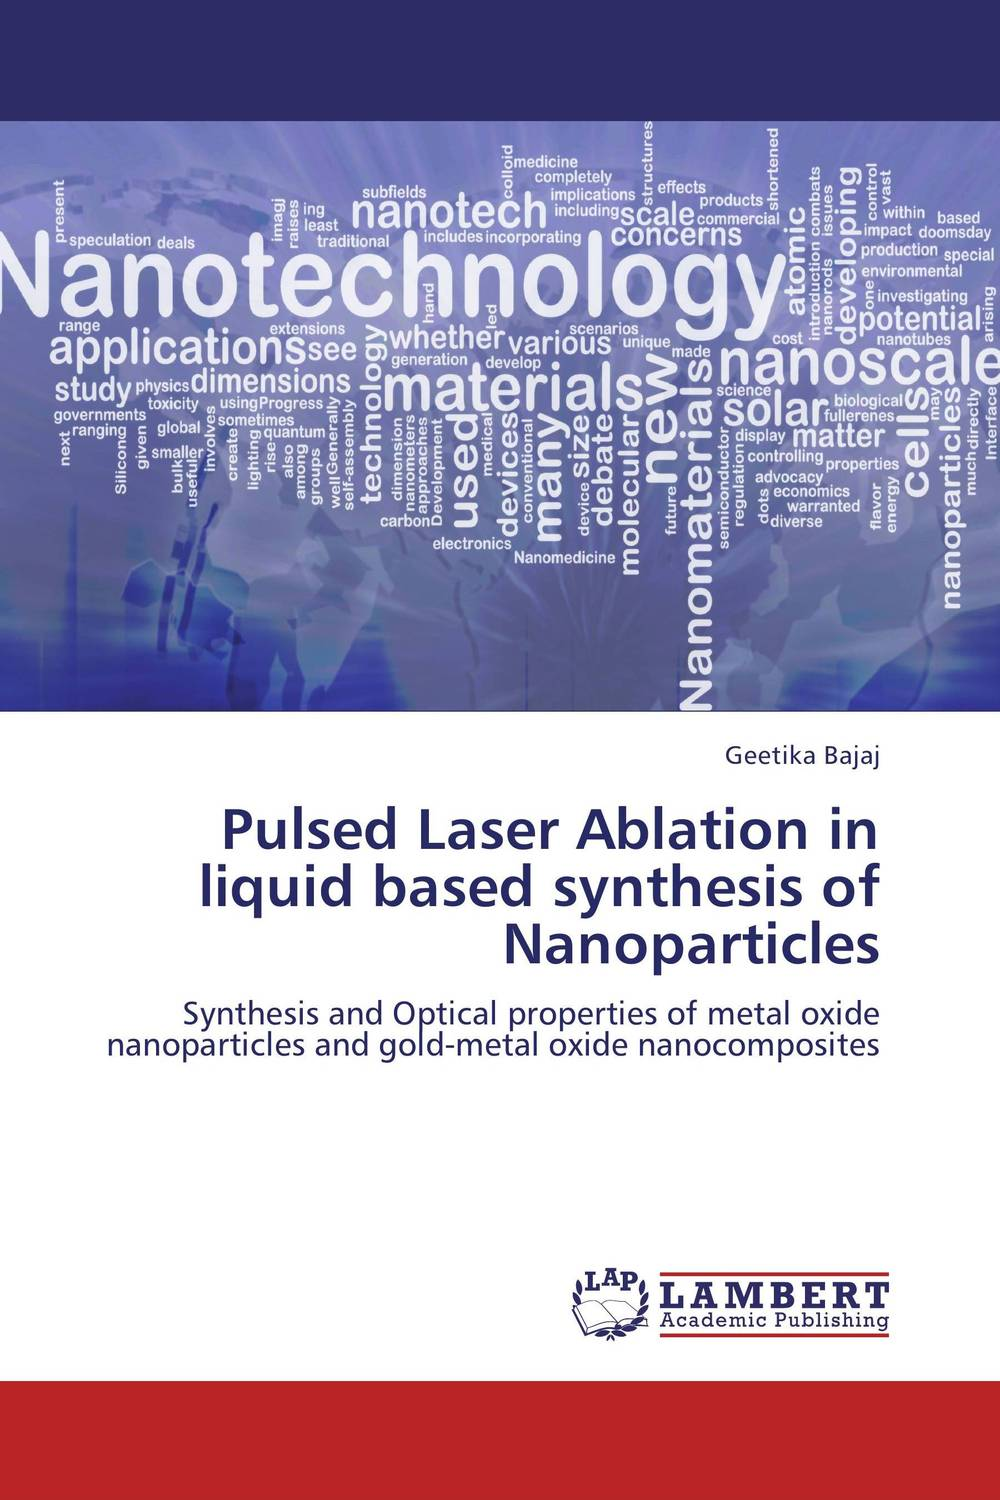 Pulsed Laser Ablation in liquid based synthesis of Nanoparticles kenneth rosen d investing in income properties the big six formula for achieving wealth in real estate